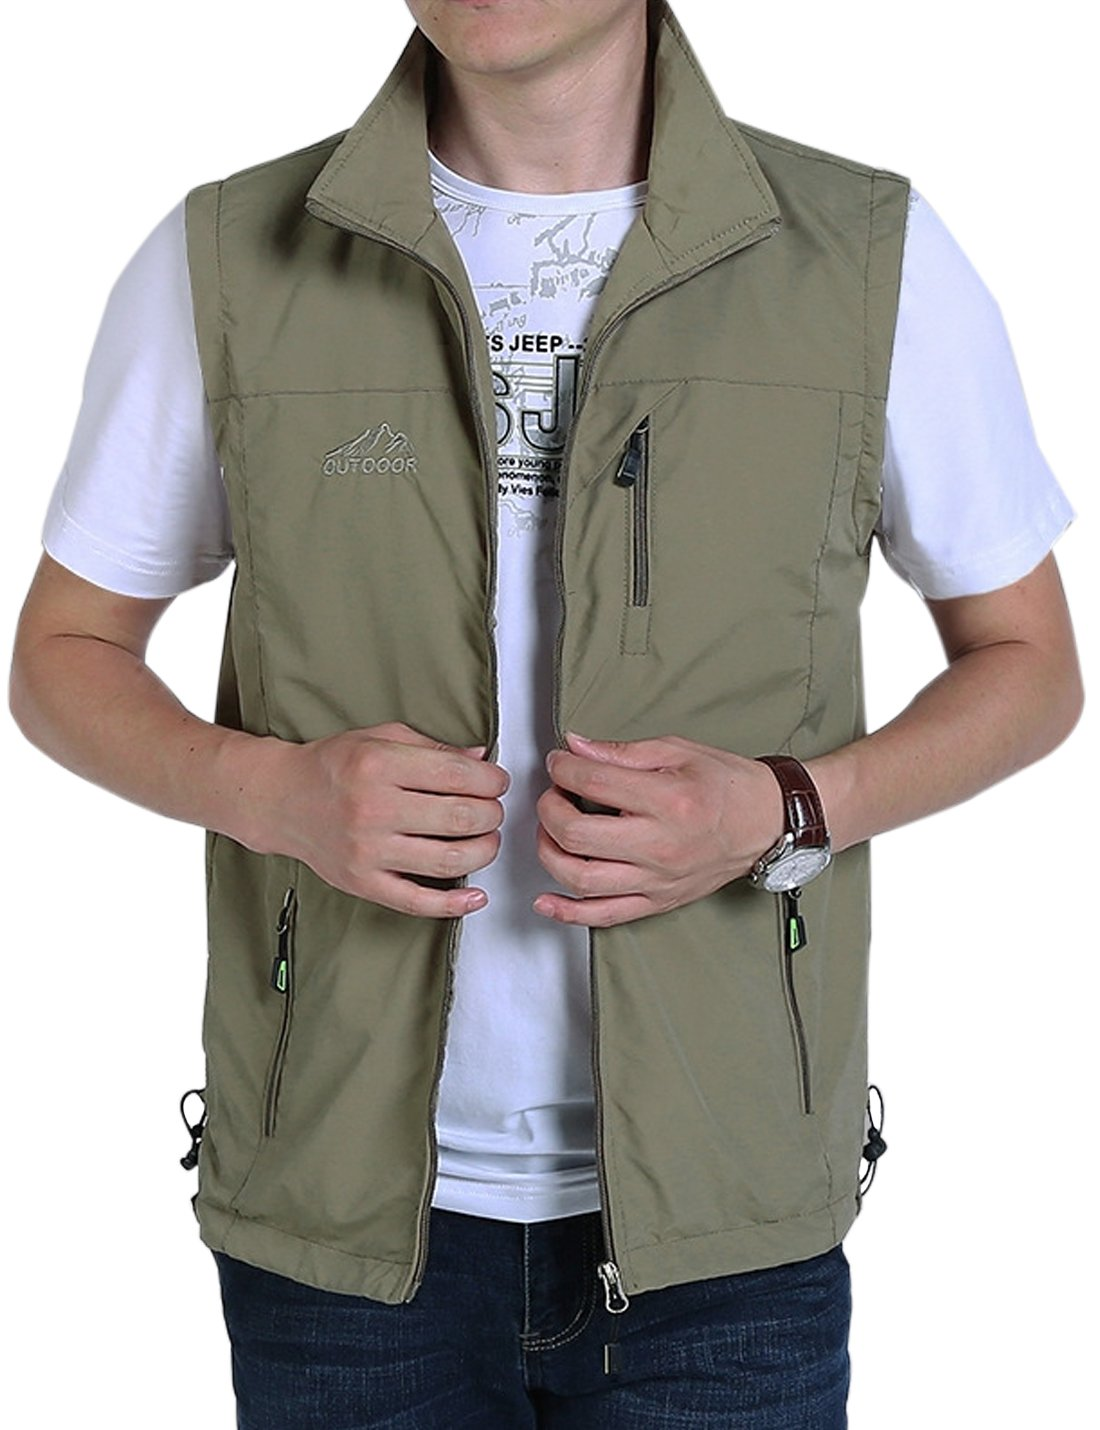 Gihuo Men's Casual Outdoor Stand Collar Lightweight Quick Dry Travel Fishing Sports Vest Outwear (Khaki, X-Large) by Gihuo